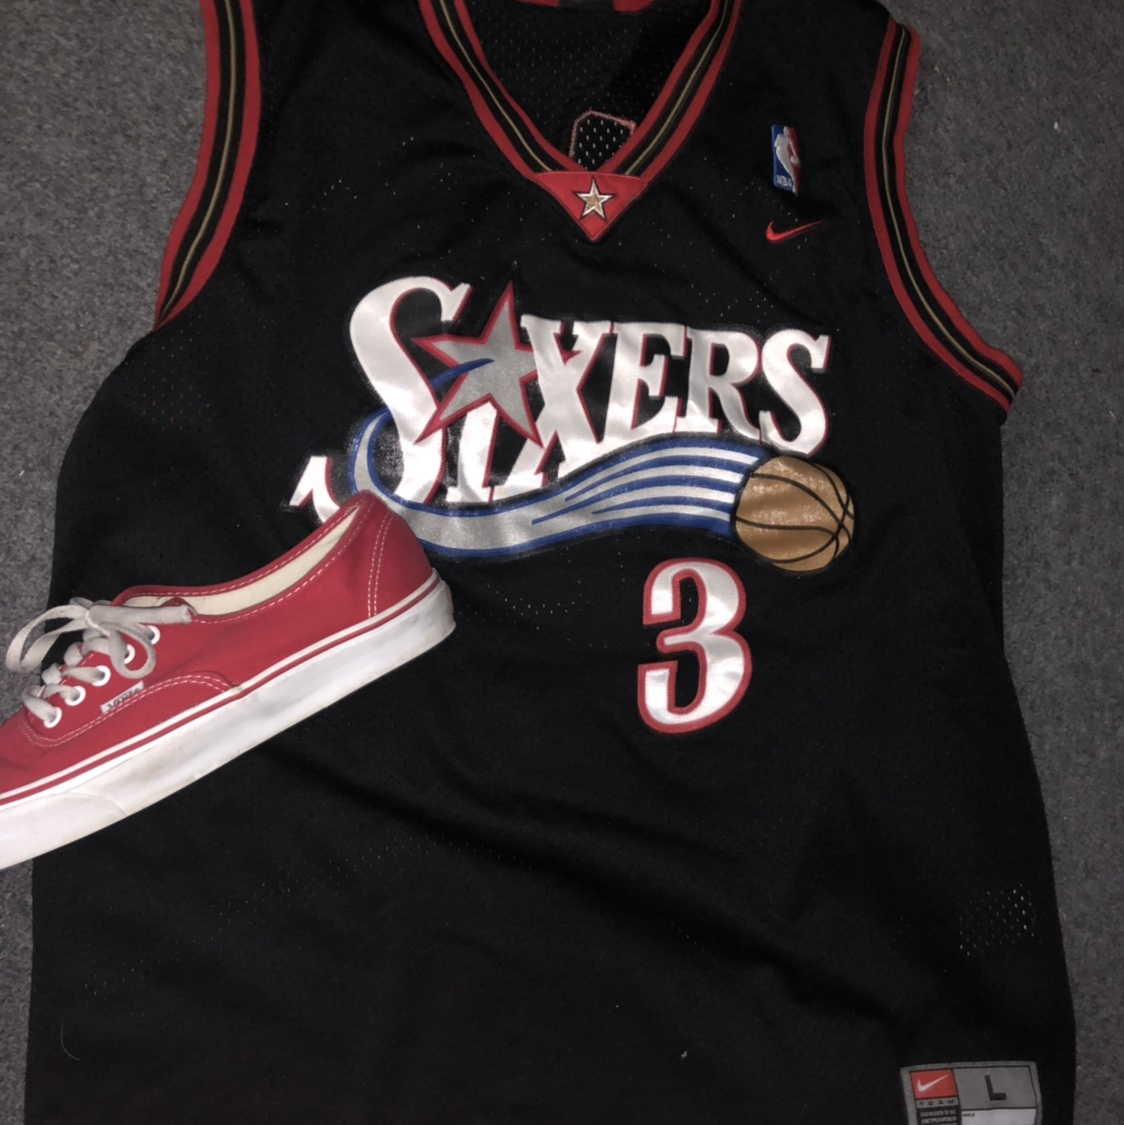 SIXERS JERSEY AS SEEN ON RAPPER BLUE FACE BABY